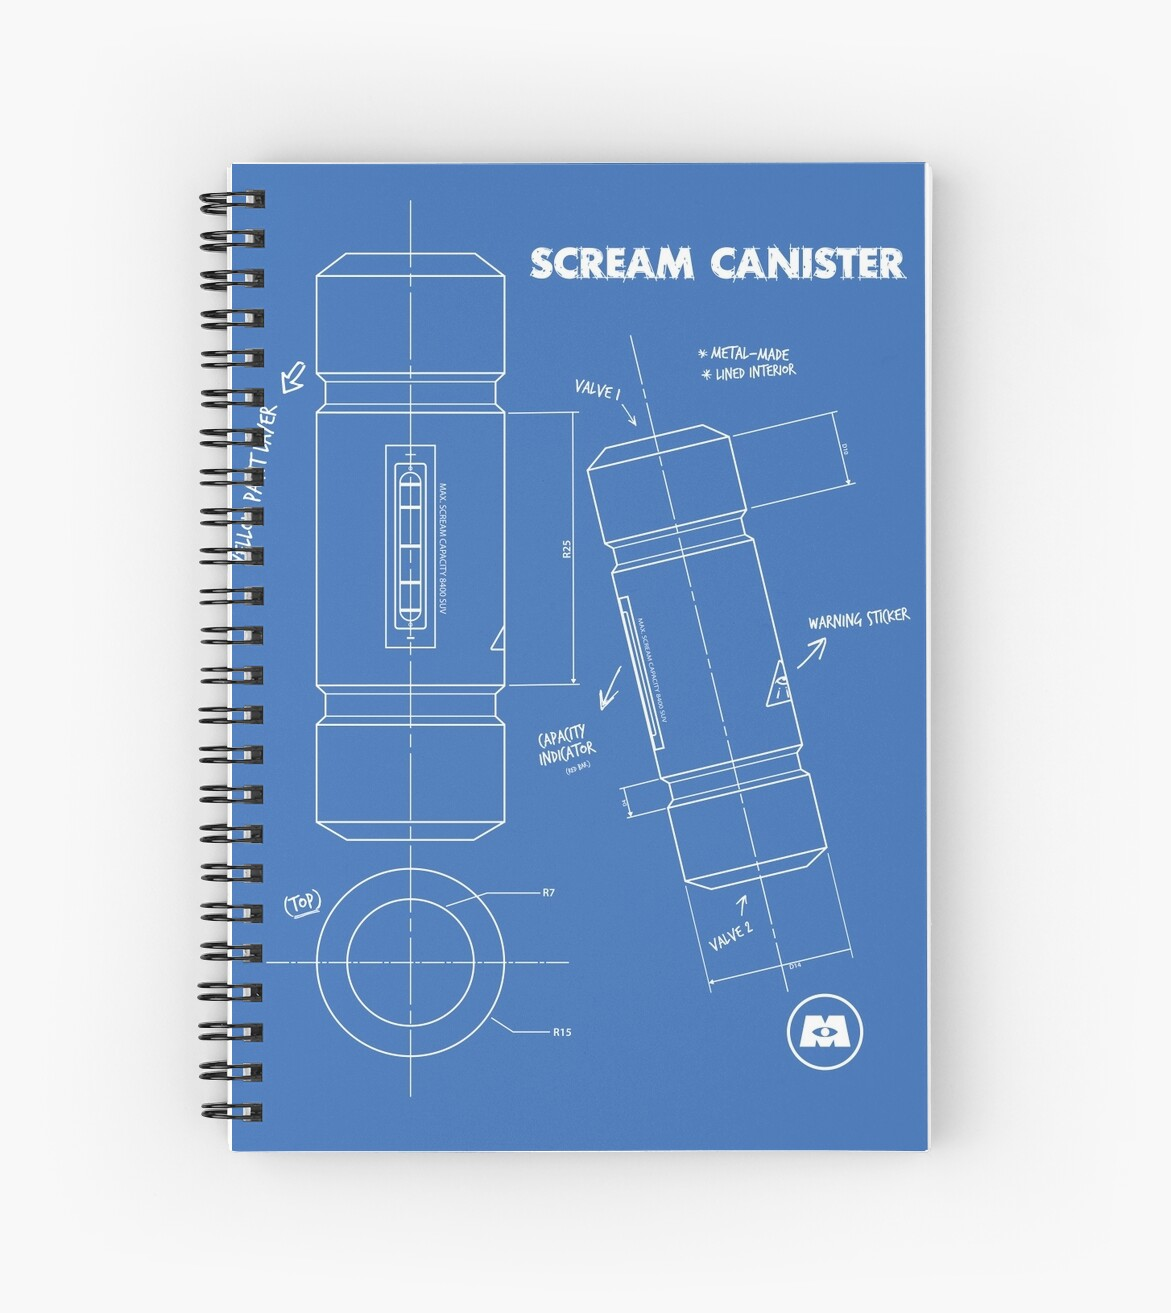 Scream canister blueprint spiral notebooks by nocilla redbubble scream canister blueprint by nocilla malvernweather Image collections